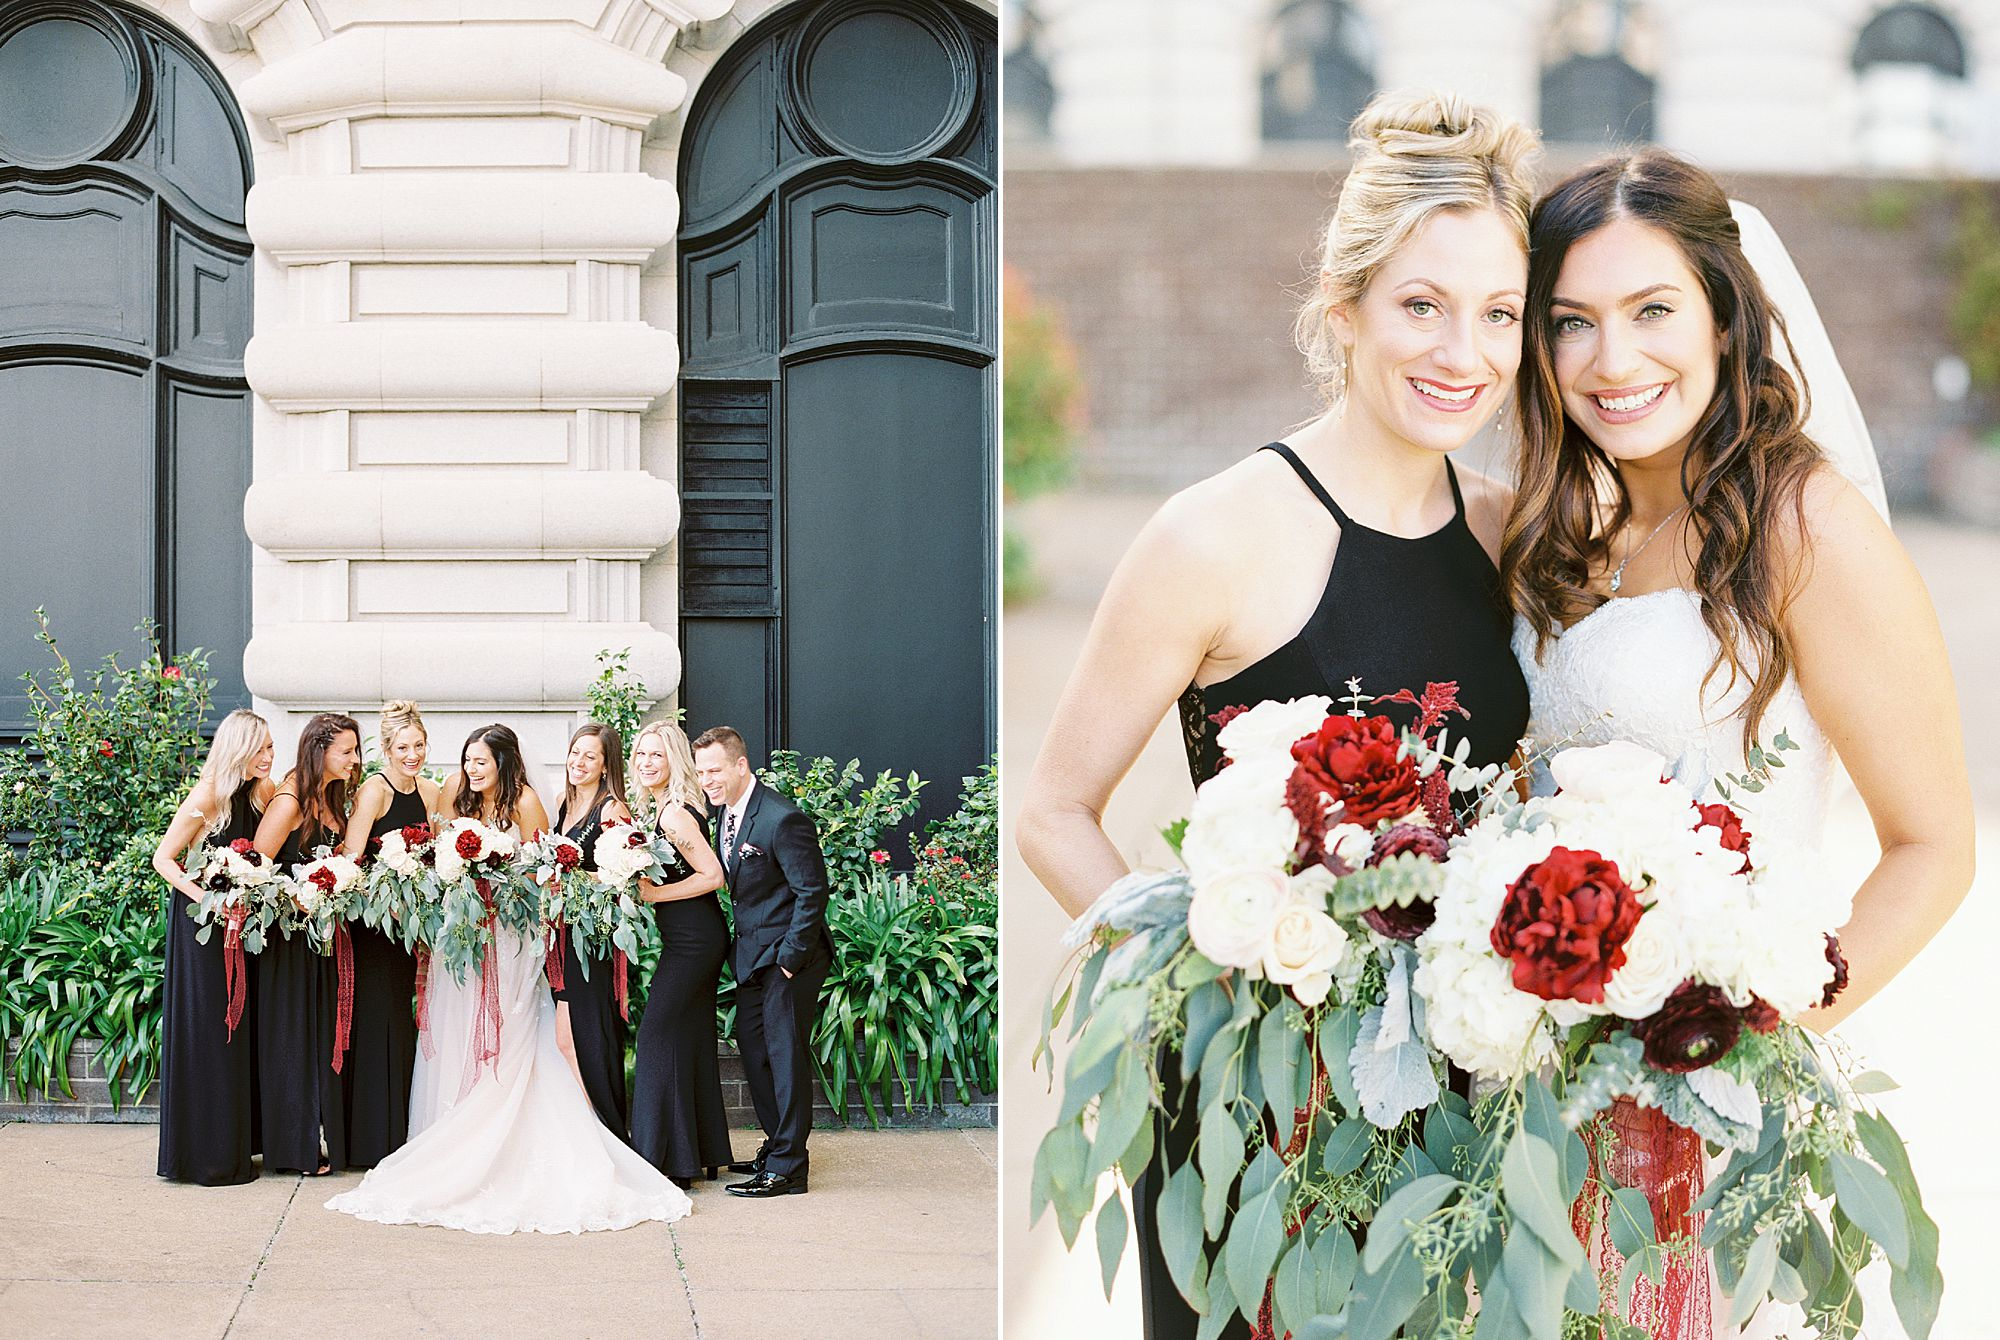 University Club Wedding in San Francisco - Cortney and Jon - San Francisco Wedding - Ashley Baumgartner - SF Wedding Photographer_0060.jpg